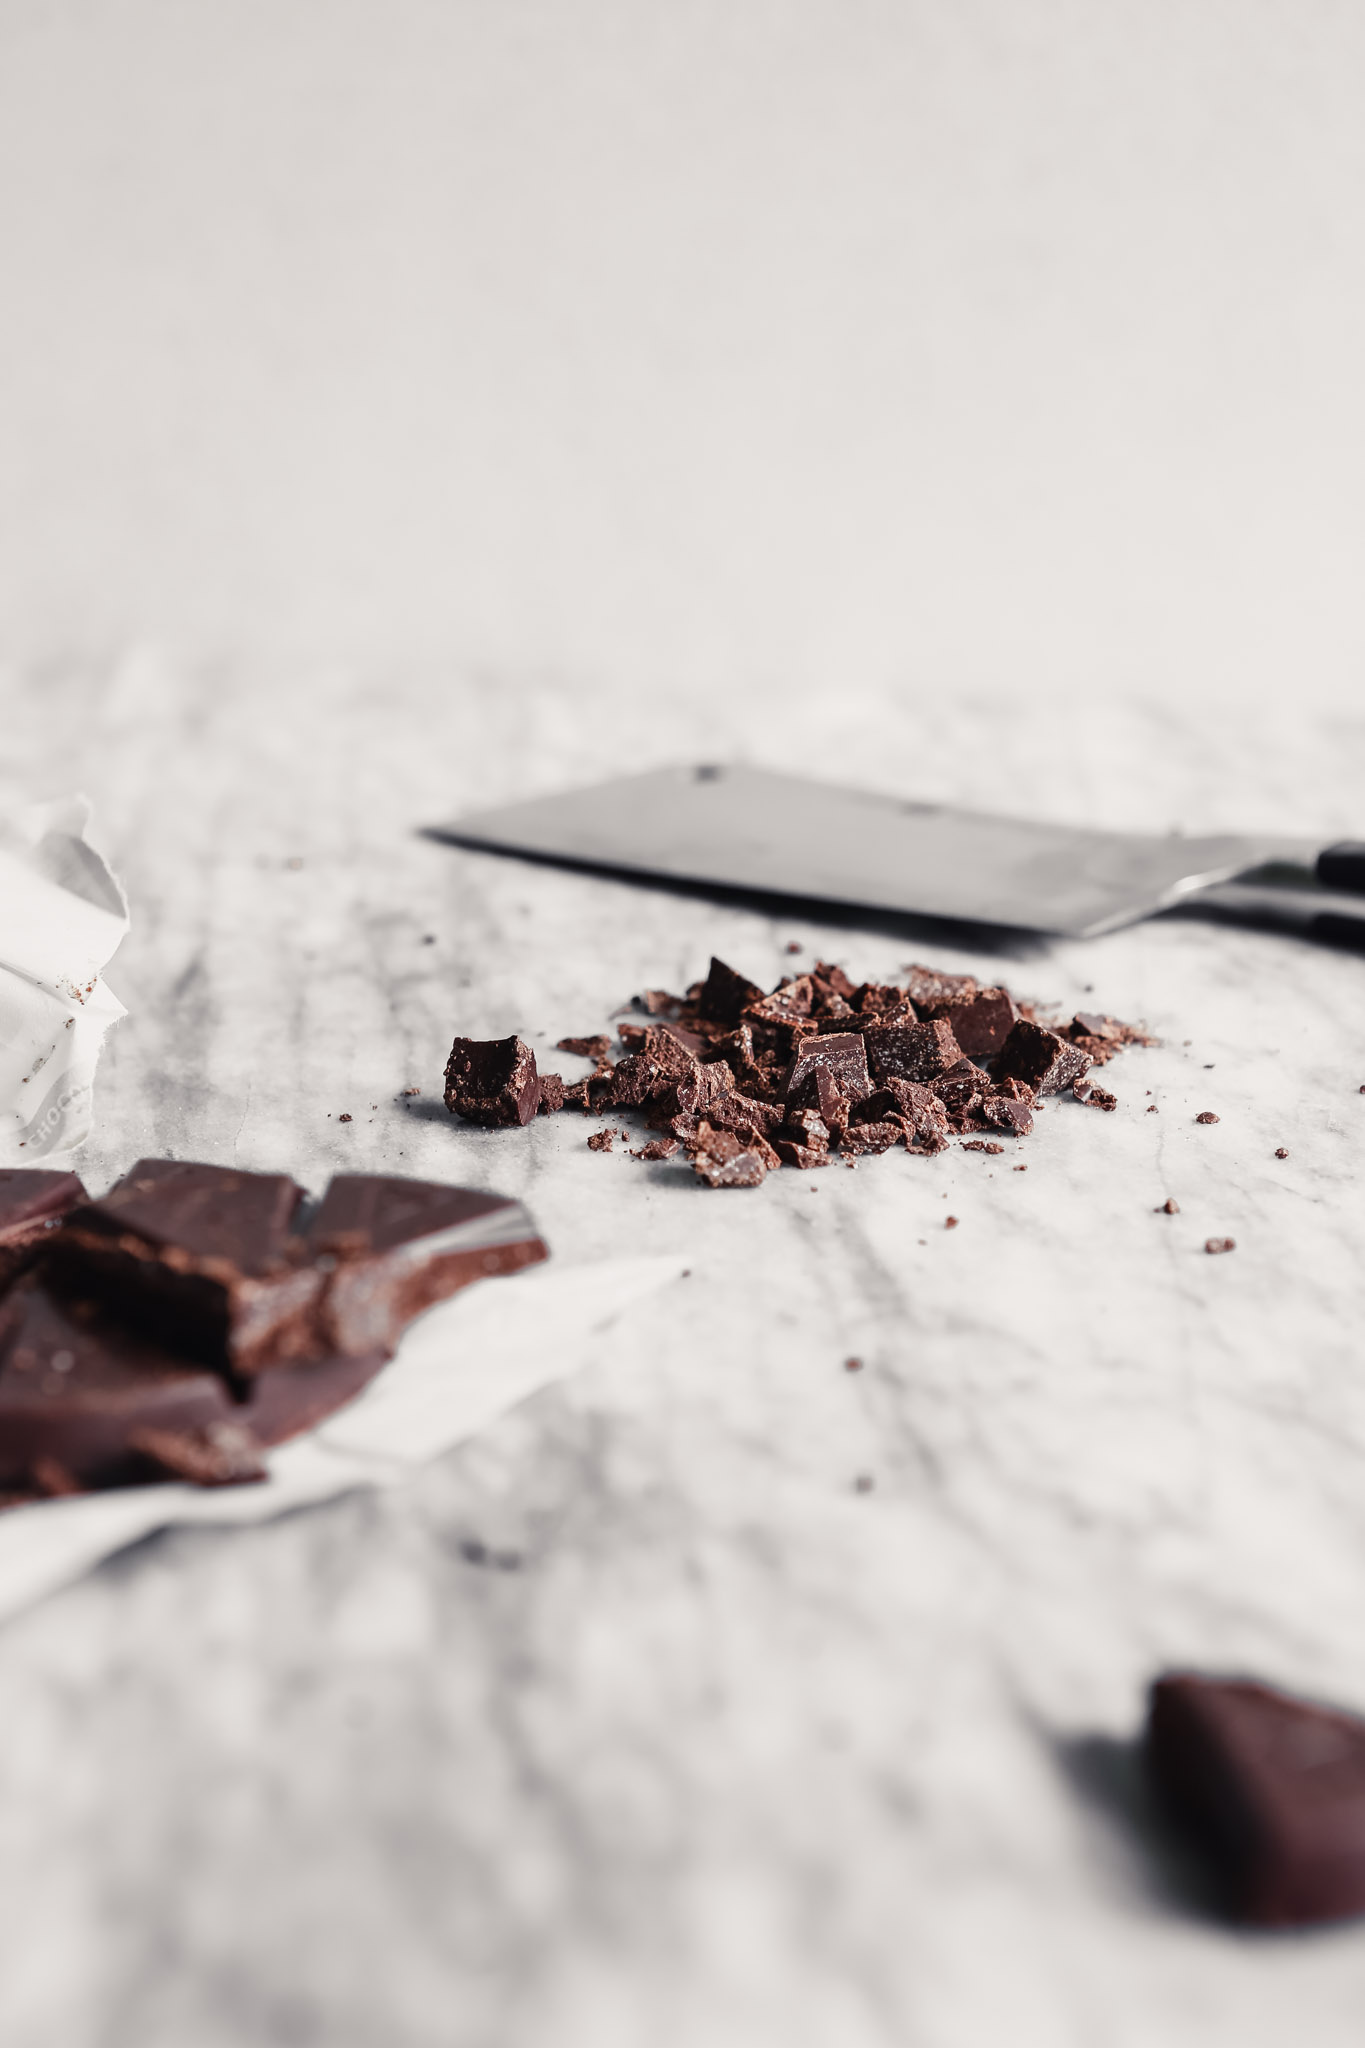 Photograph of chopped Mexican chocolate